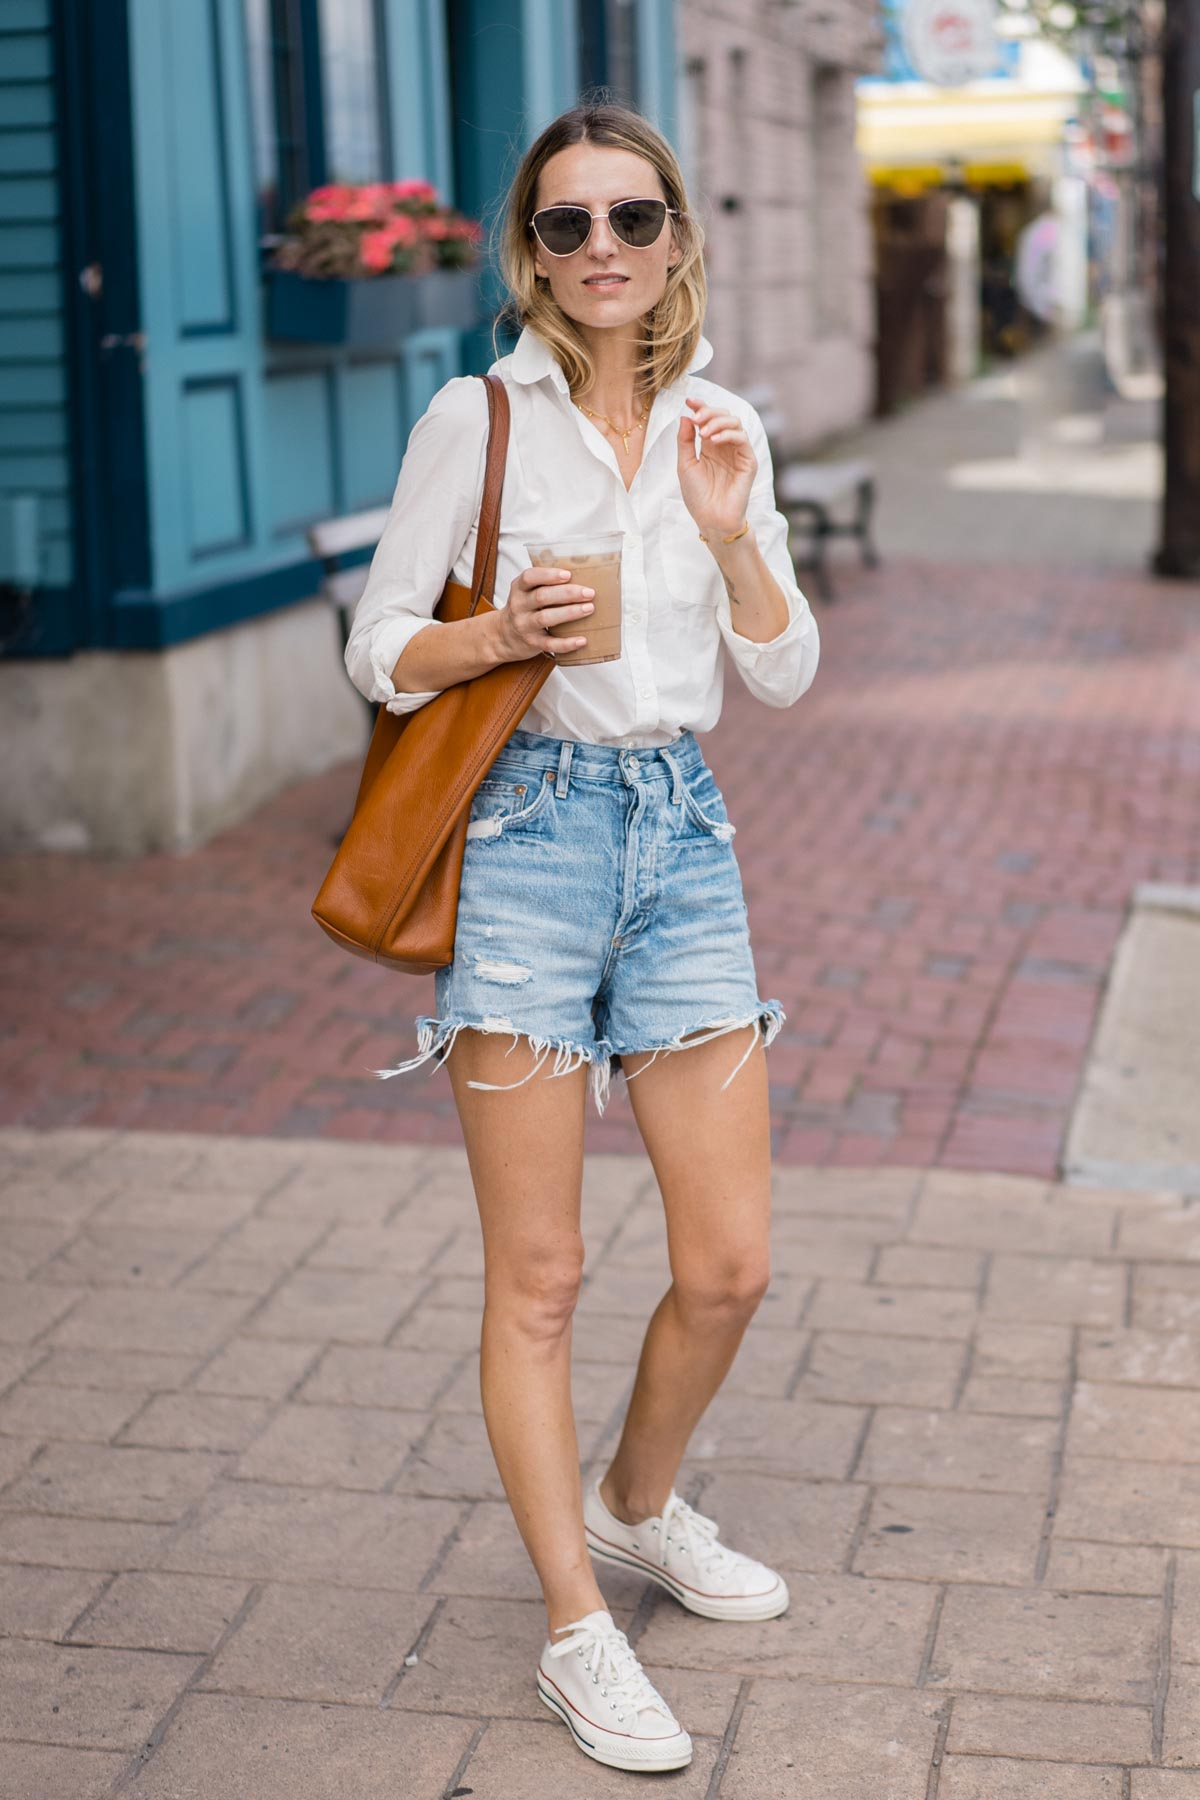 Jess Ann Kirby wears Agolde Dee Denim shorts with a classic white button down